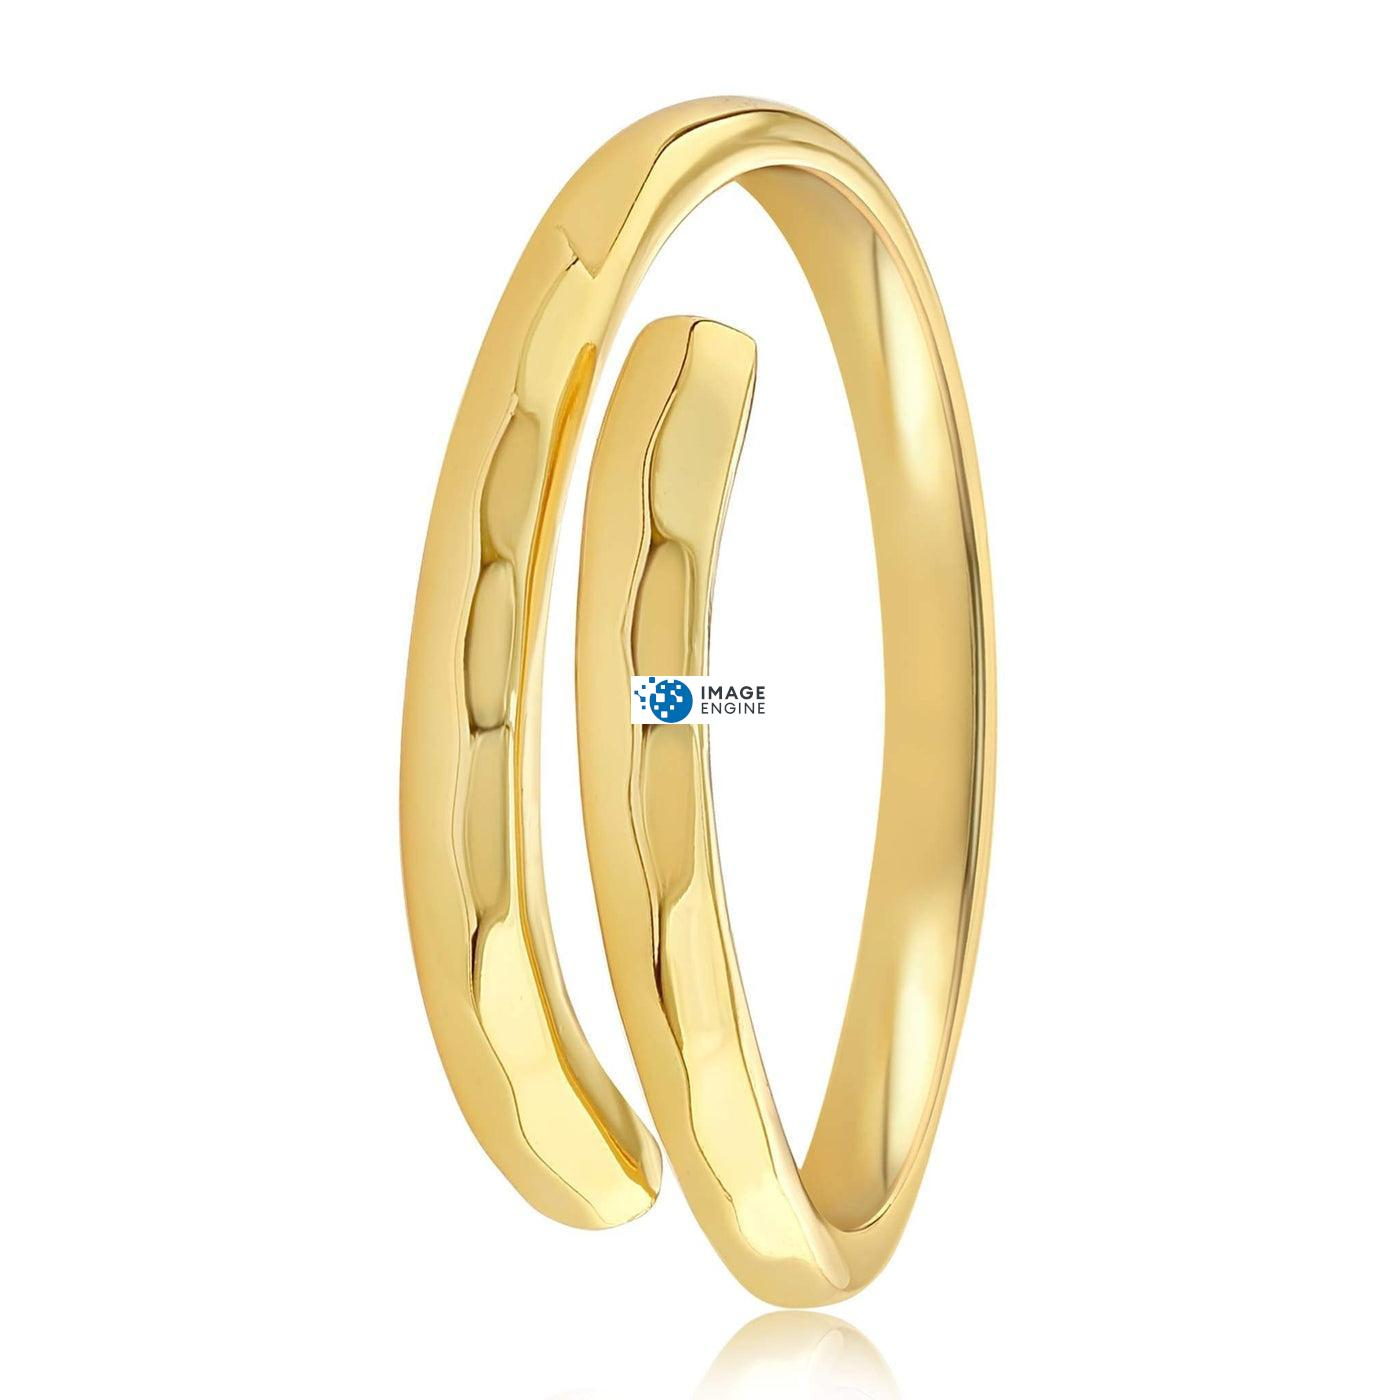 Minimalist Thumb Ring - Side View - 18K Yellow Gold Vermeil